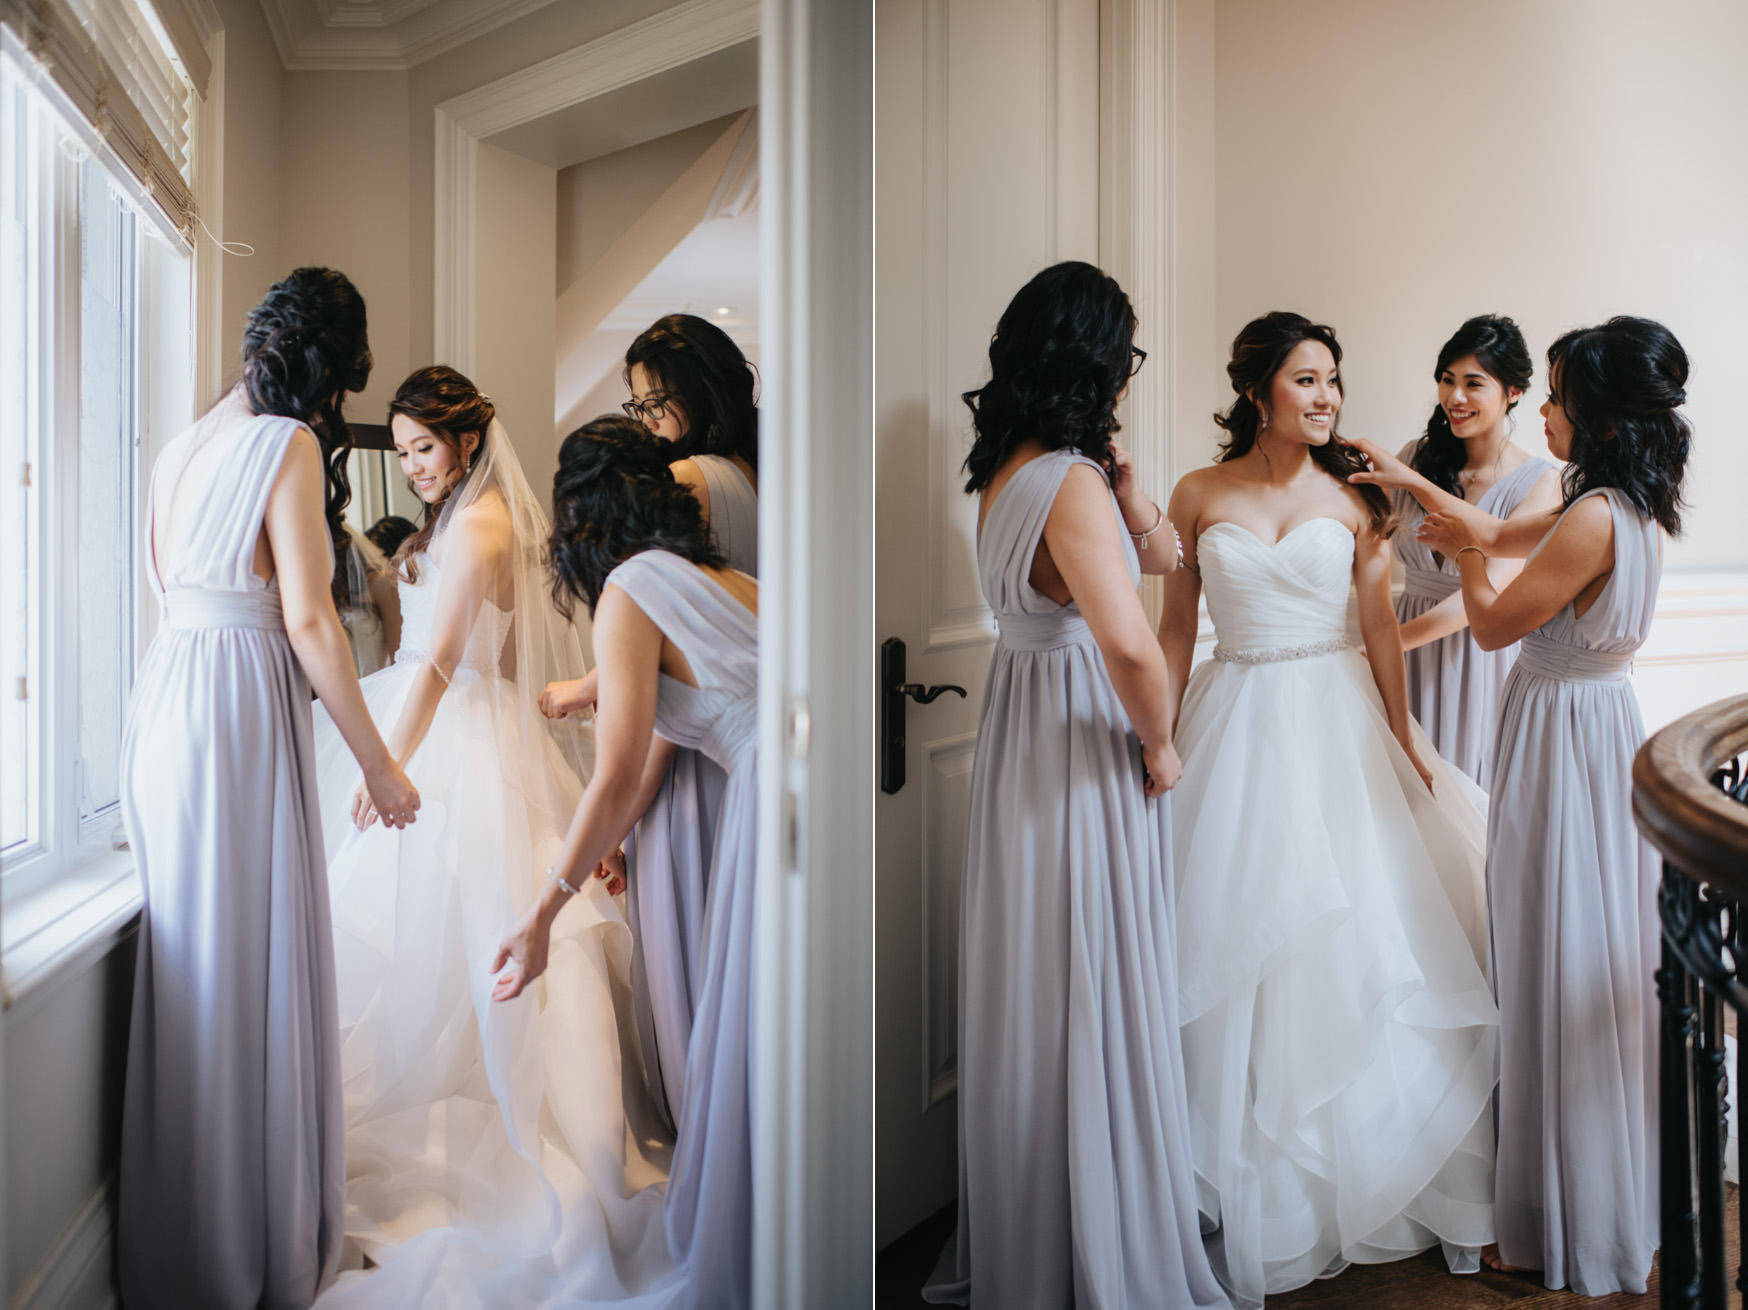 Toronto Wedding Bride Getting Ready while bridesmaids help her with touch up